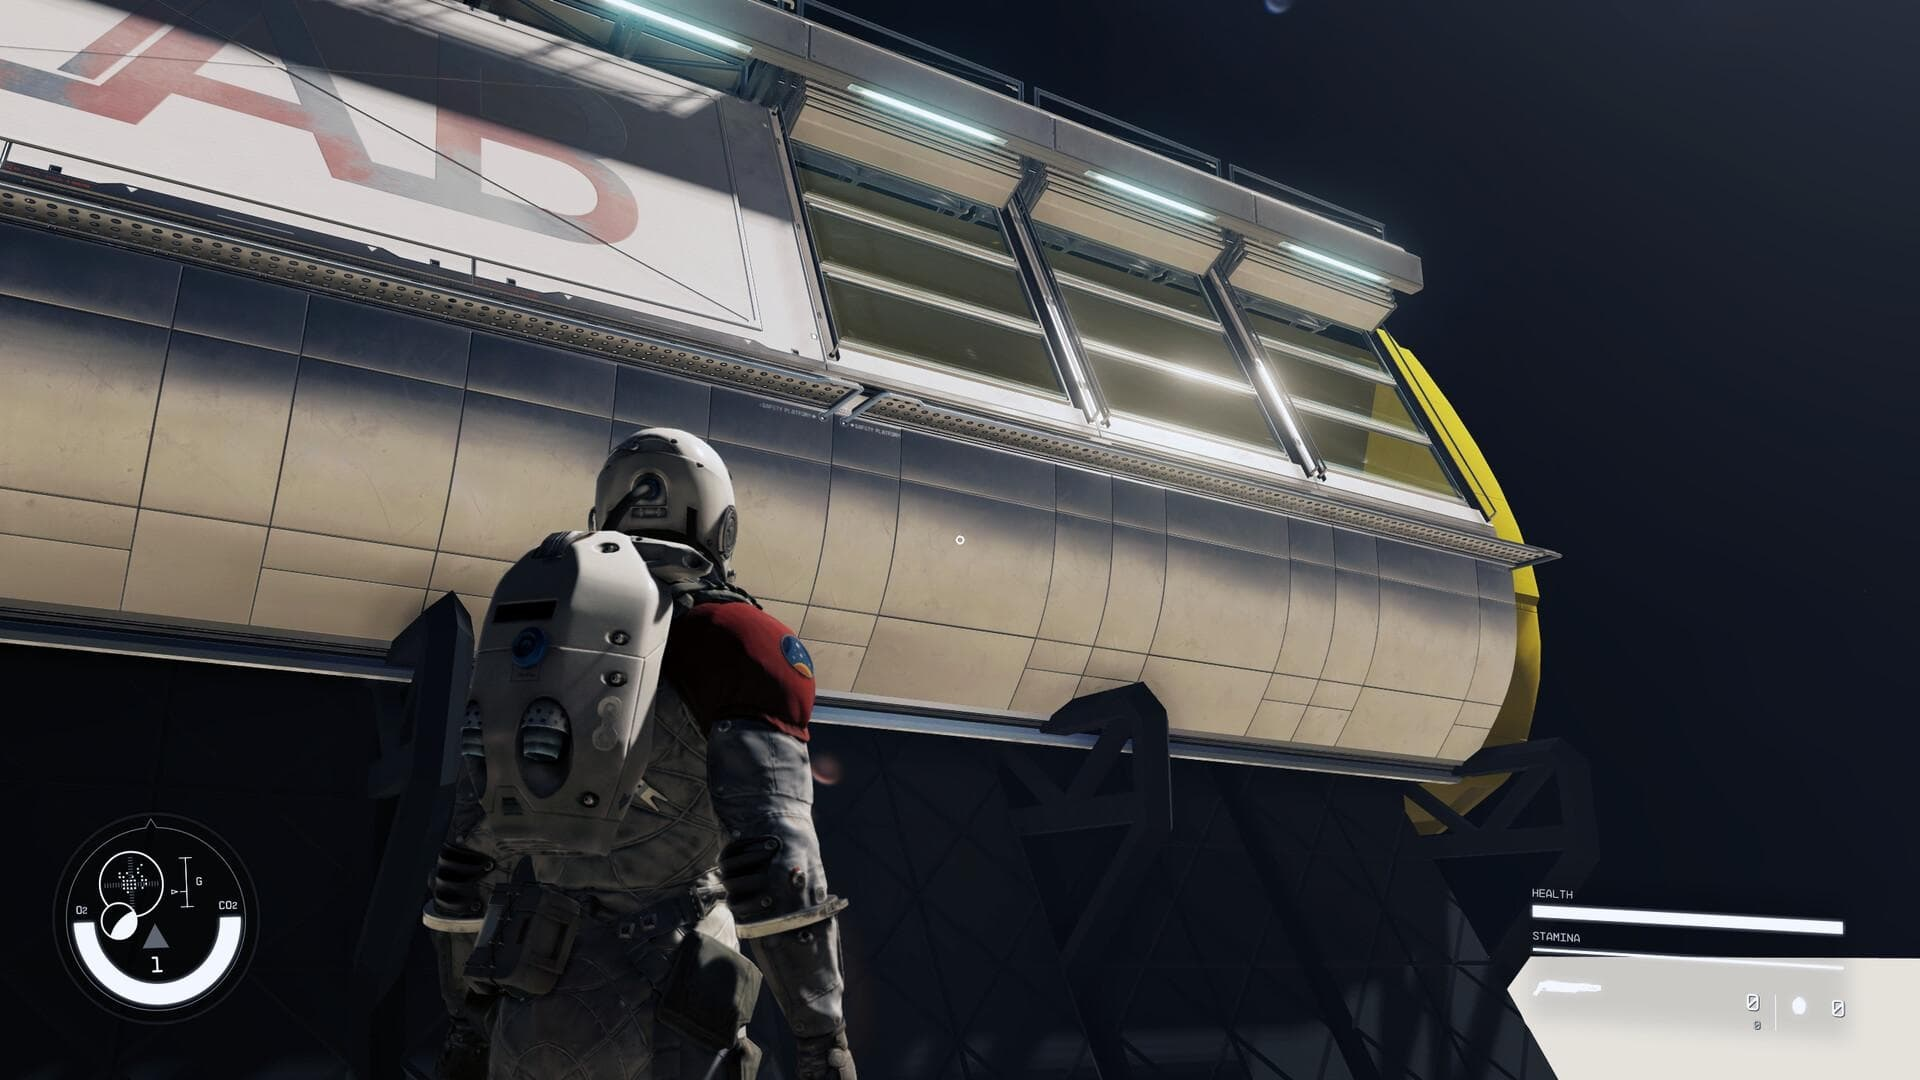 Starfield leaked images may give us our first look at Bethesda's space RPG | GamesRadar+